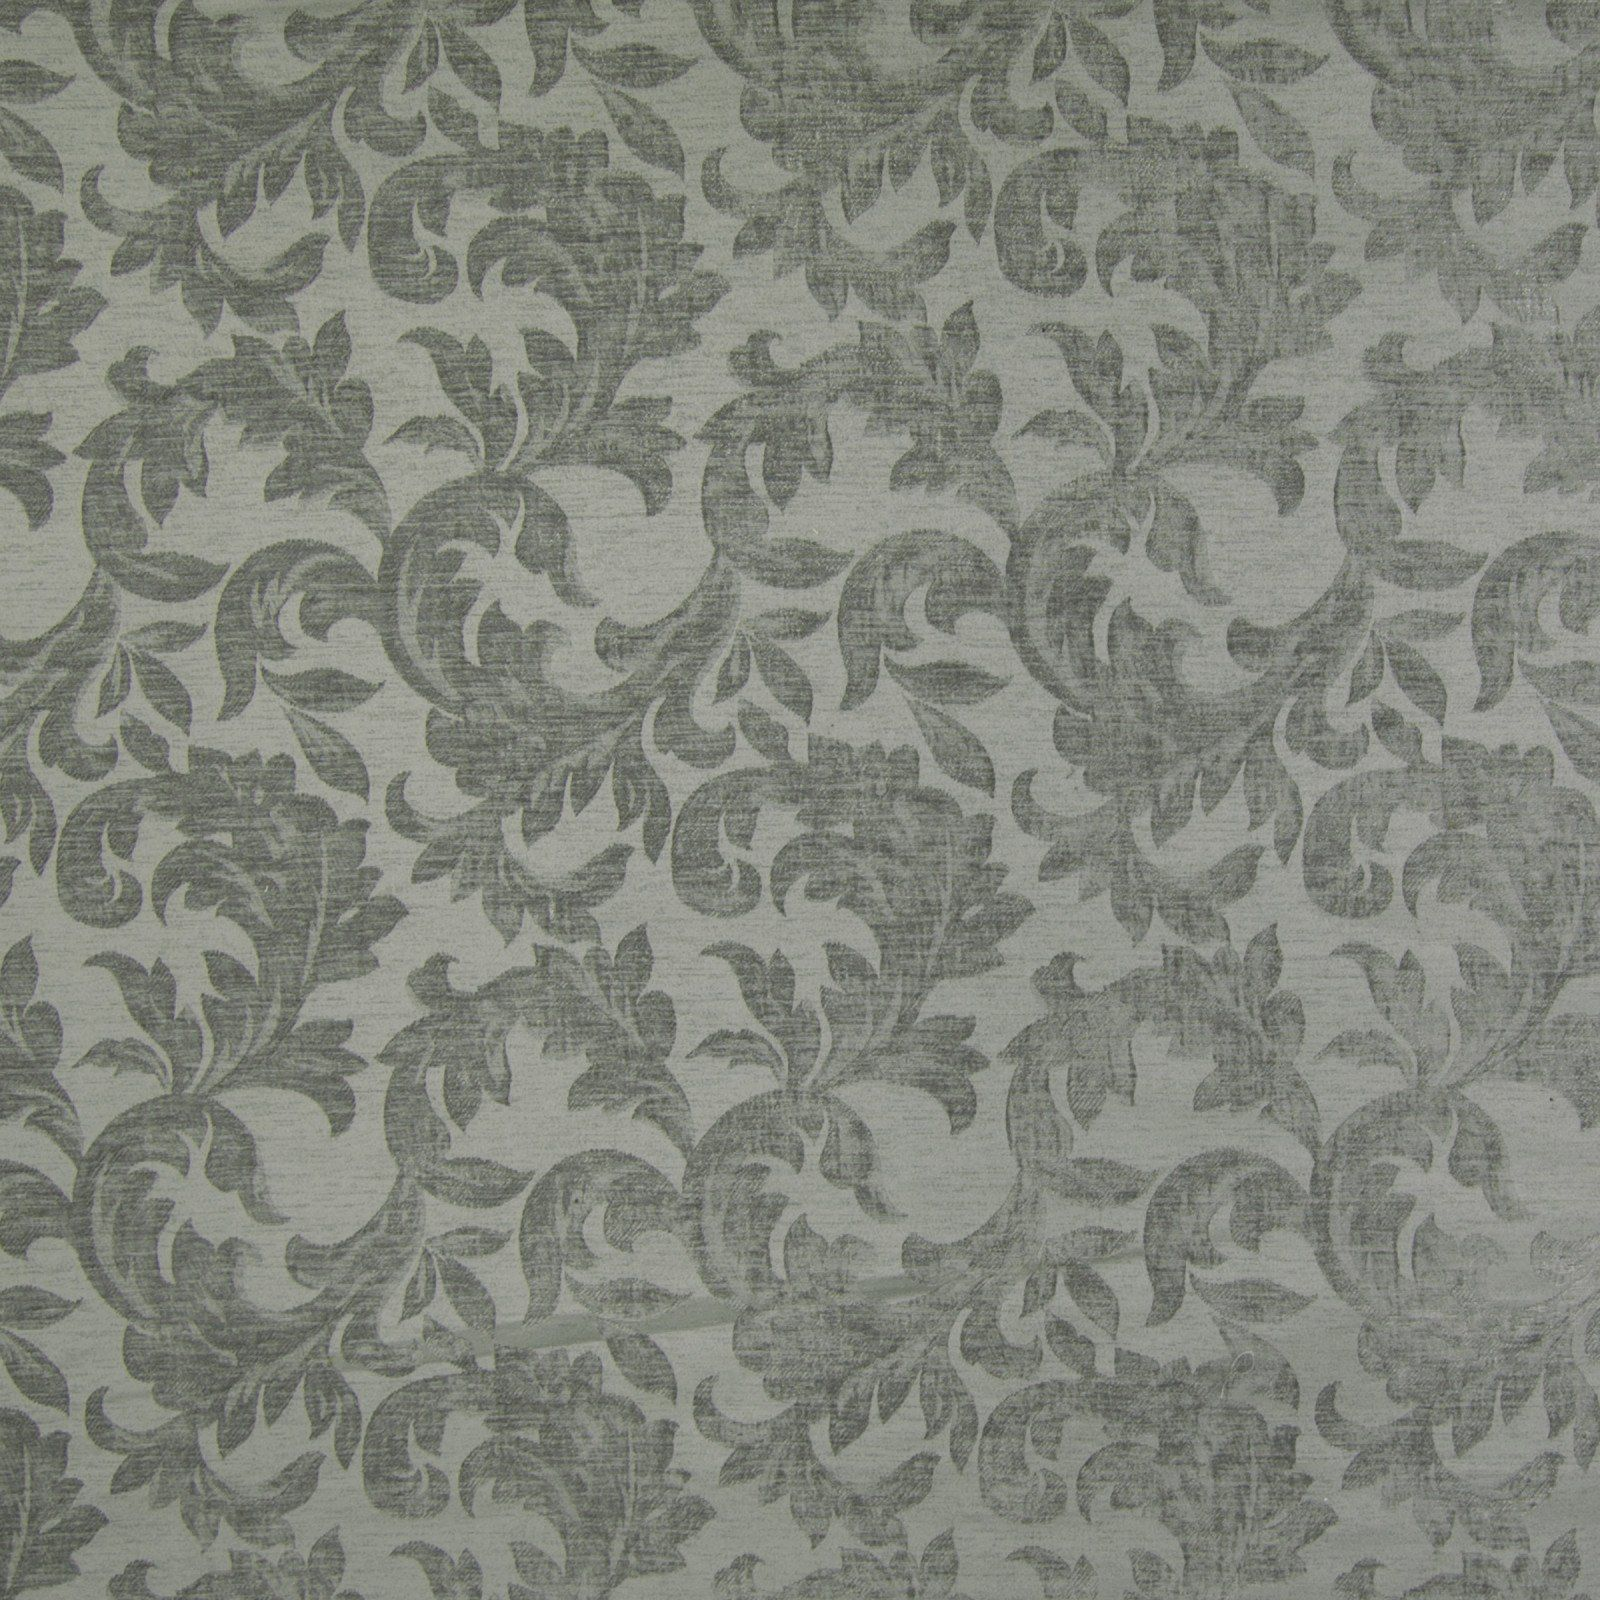 Slate Blue Gray Floral Foliage Print Upholstery Fabric